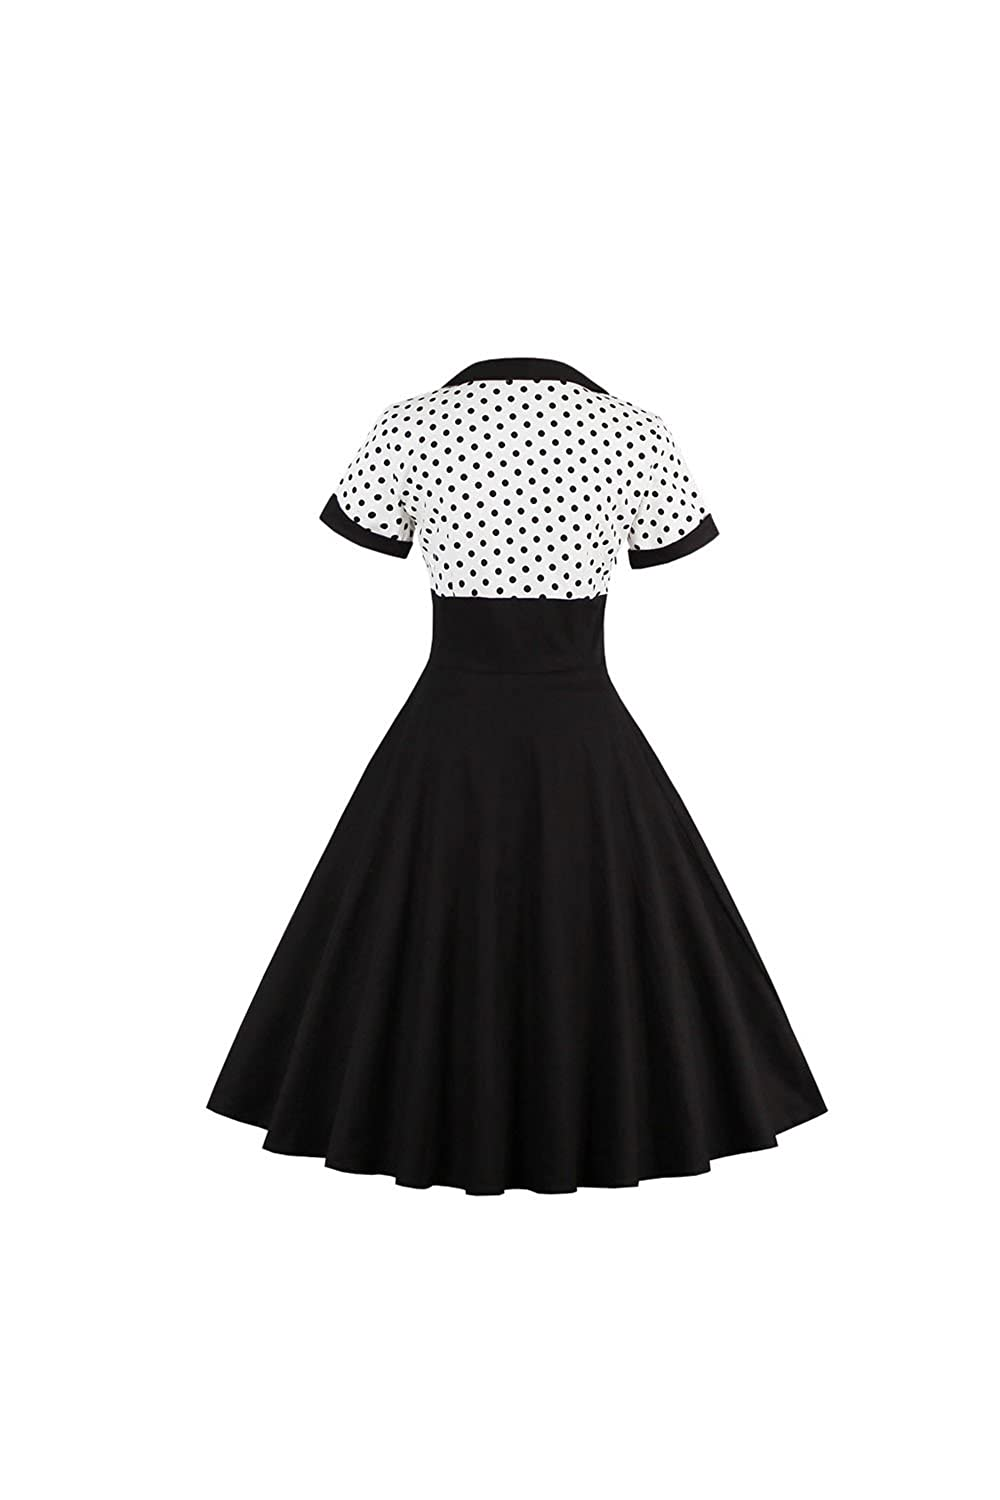 cfdd6ed81f65 Moonpin Women's Vintage 1940s Polka Dot Tunic Midi Fit and Flare Dress:  Amazon.co.uk: Clothing